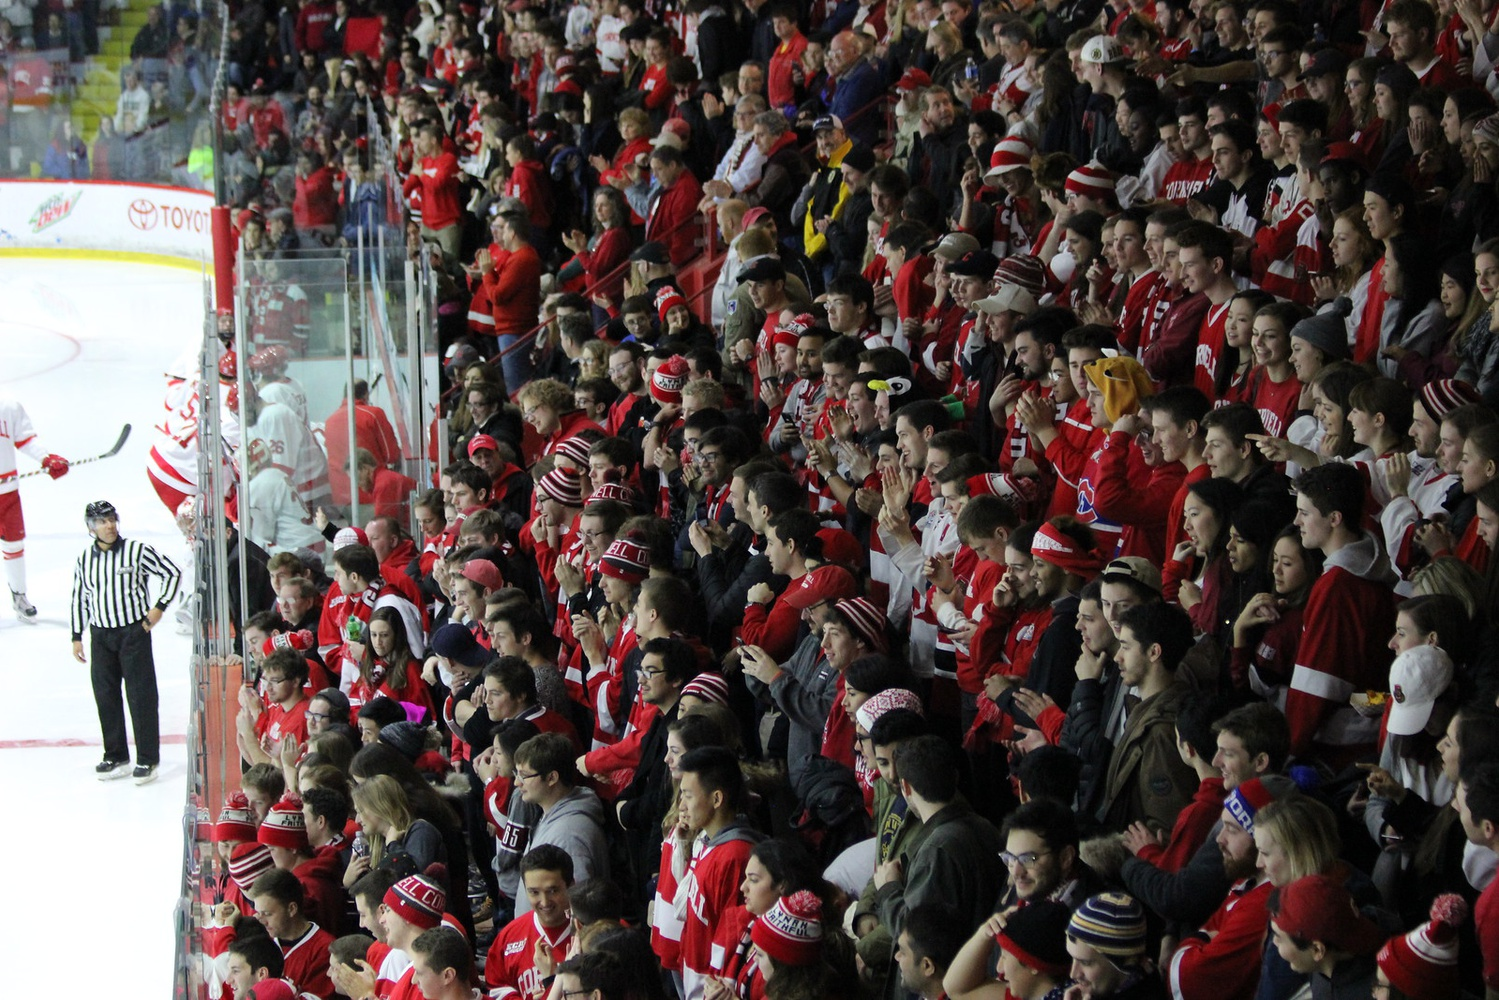 Like last year (pictured here), Harvard expects to see a ferocious crowd at Lynah Rink on Saturday.